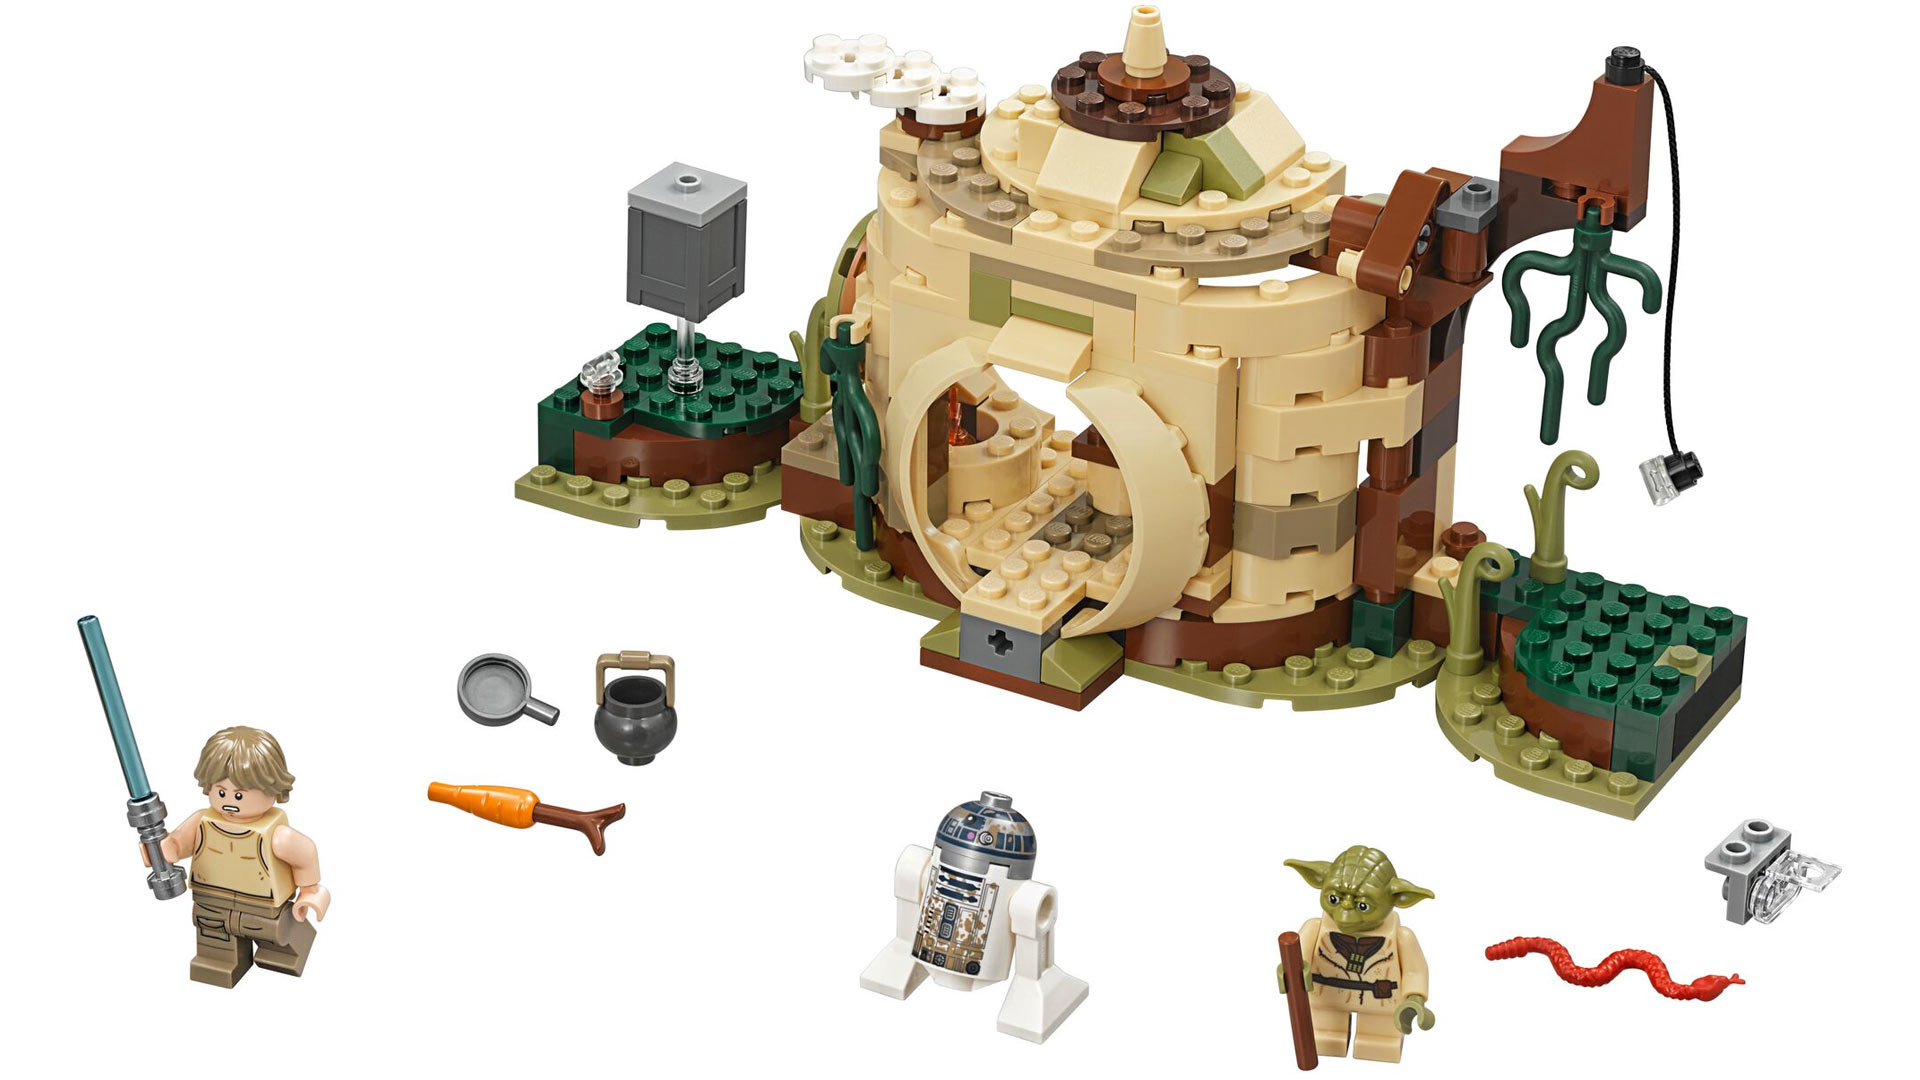 LEGO Star Wars Set 75208 Yoda's Hut at Toy Fair 2018